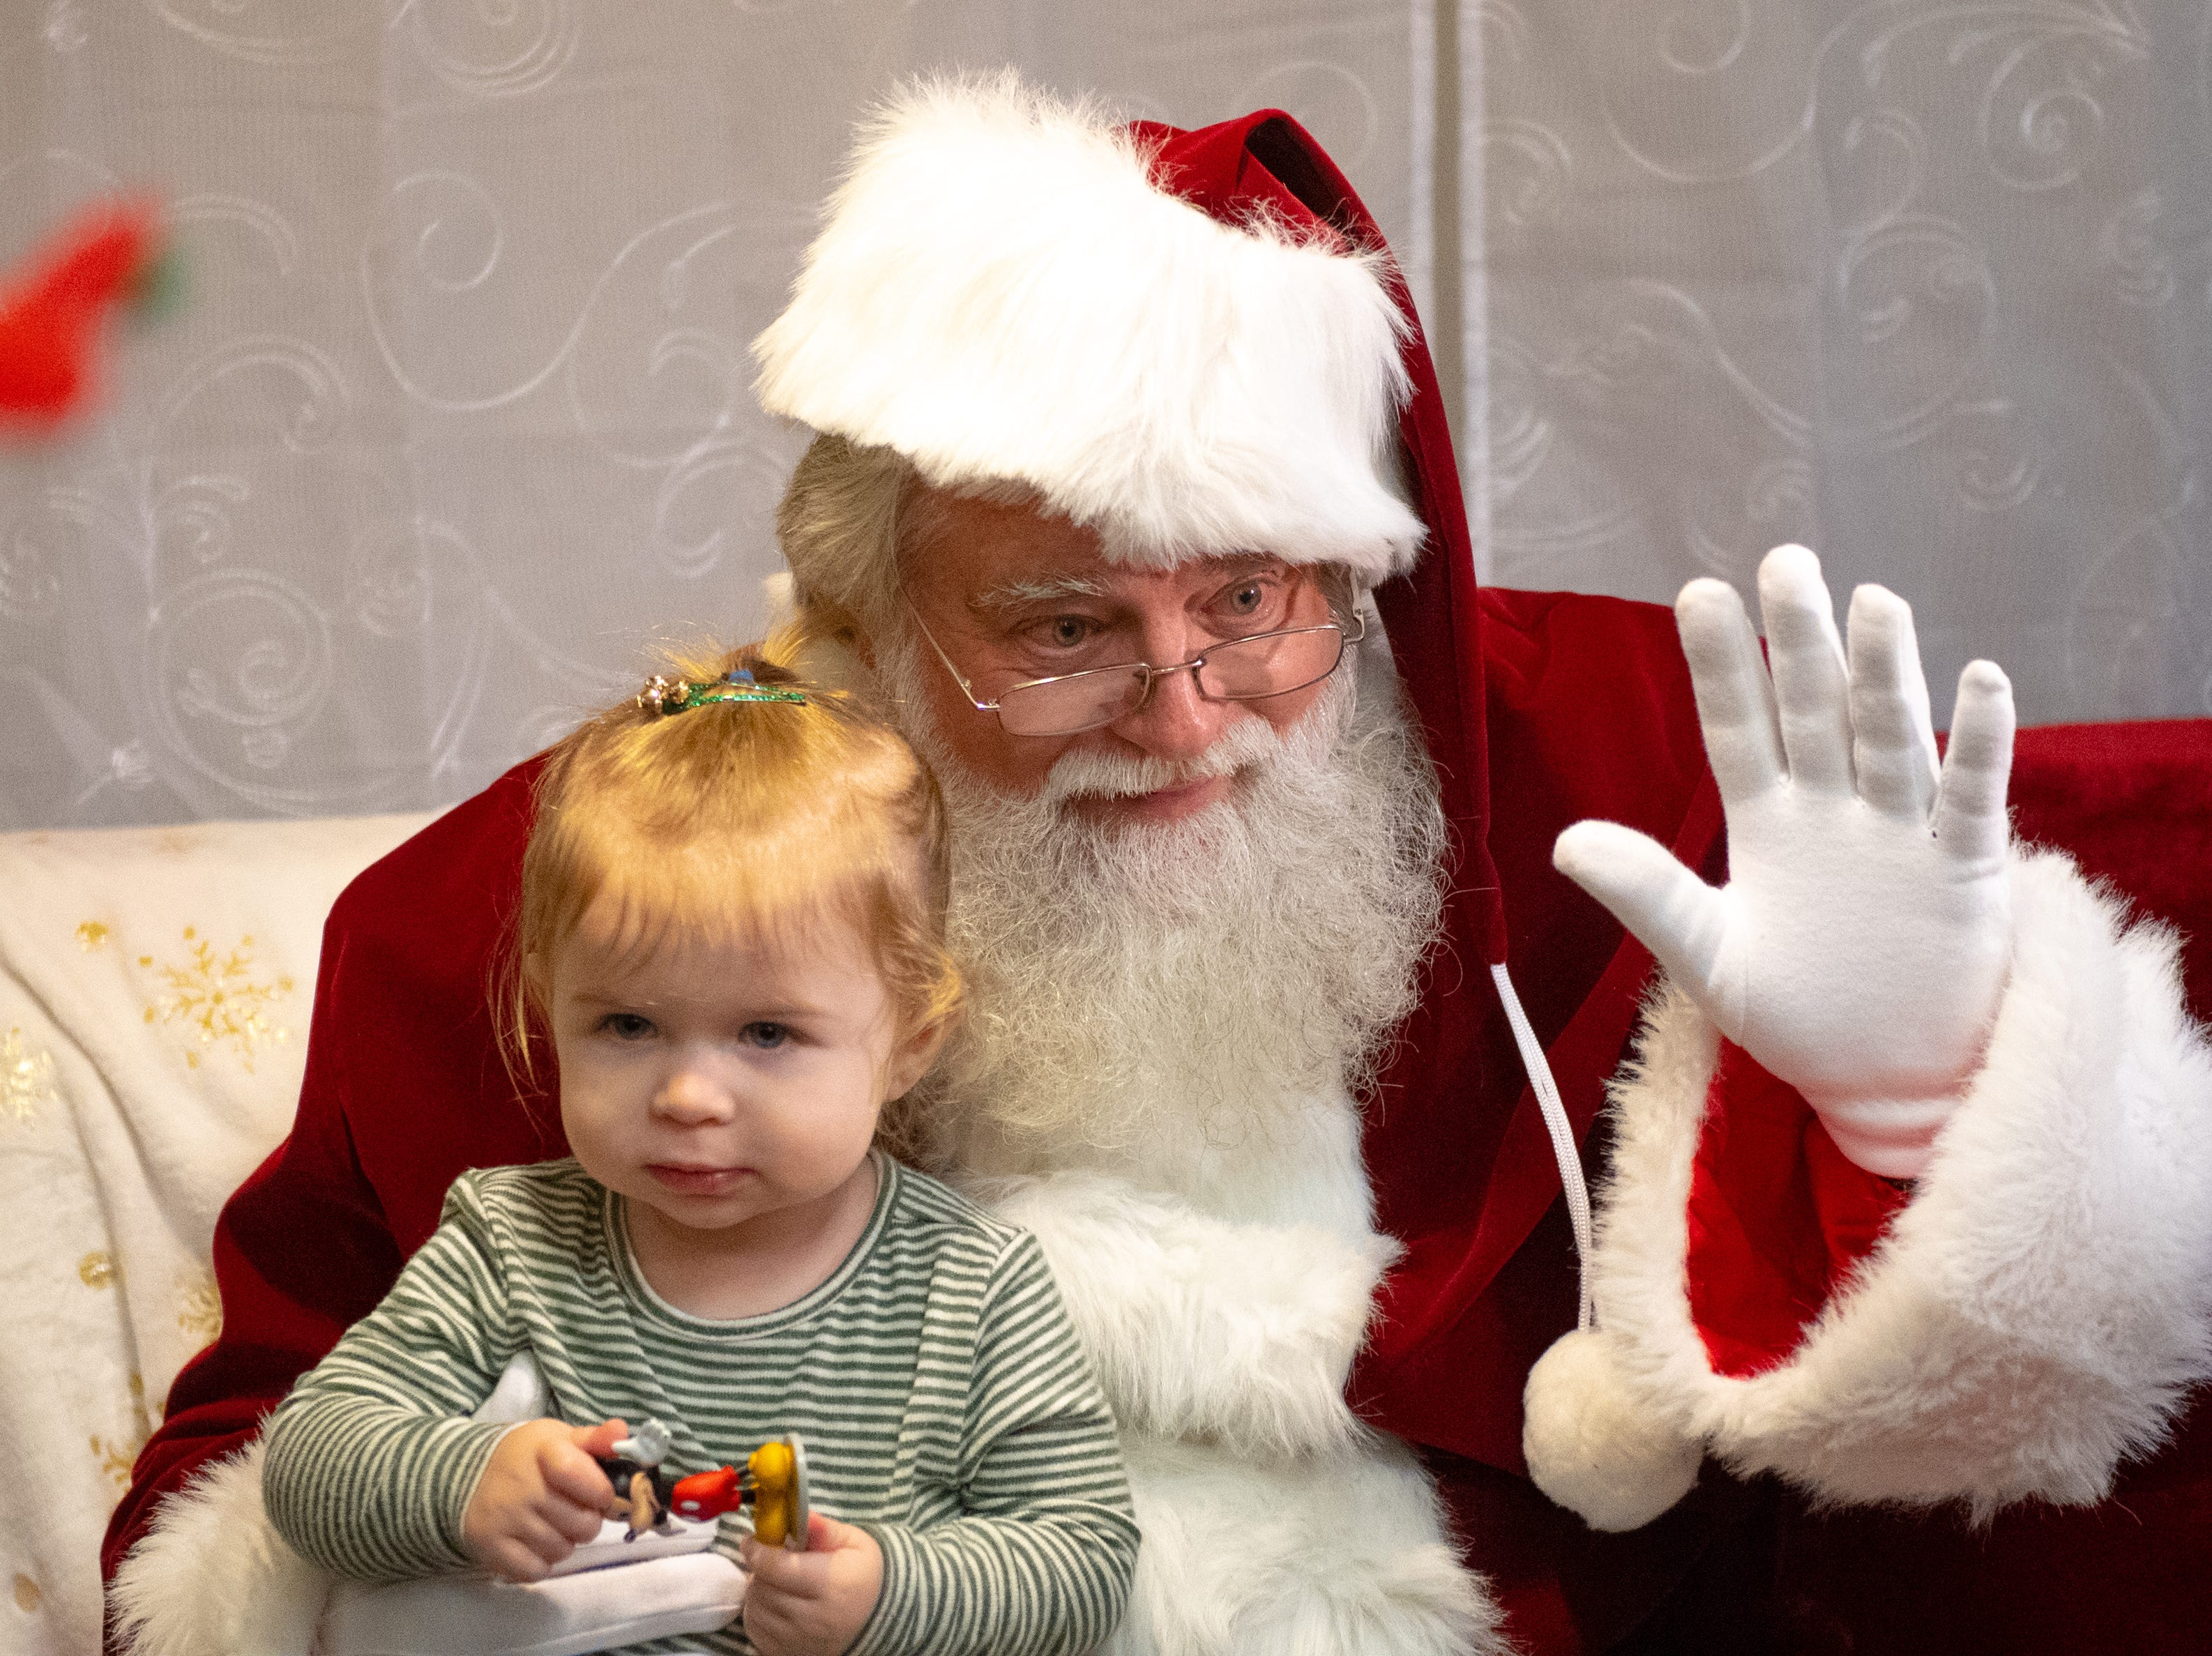 Josephine Buracker, 1, of West Manchester Township looks everywhere but the camera during the Dinner with Santa and Santa Cow event at Chick-fil-A in East York, December 19, 2018.